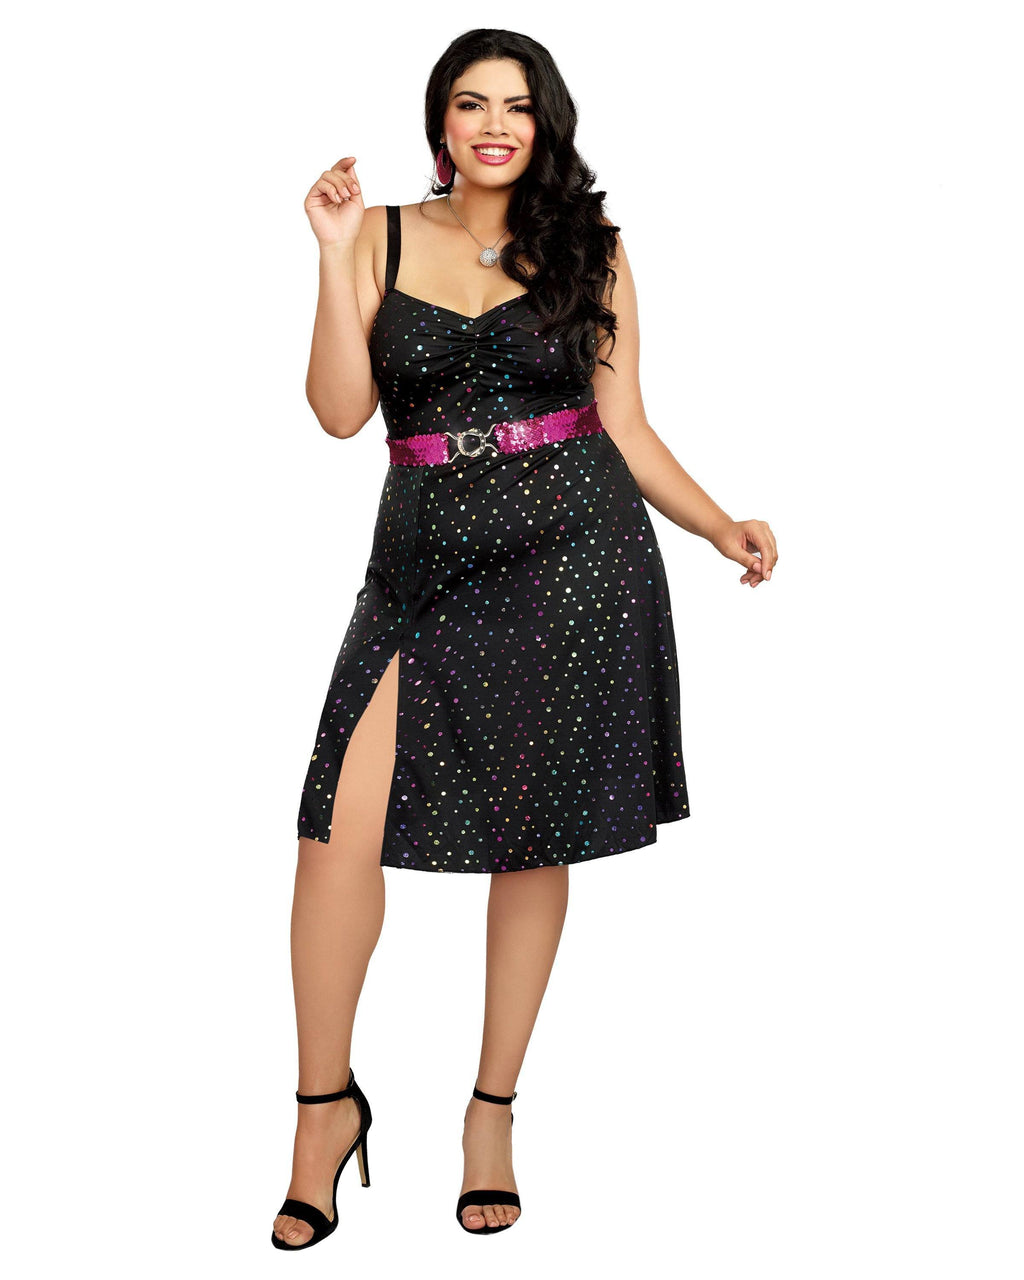 Plus Size Disco Diva Women's Costume Dreamgirl Costume